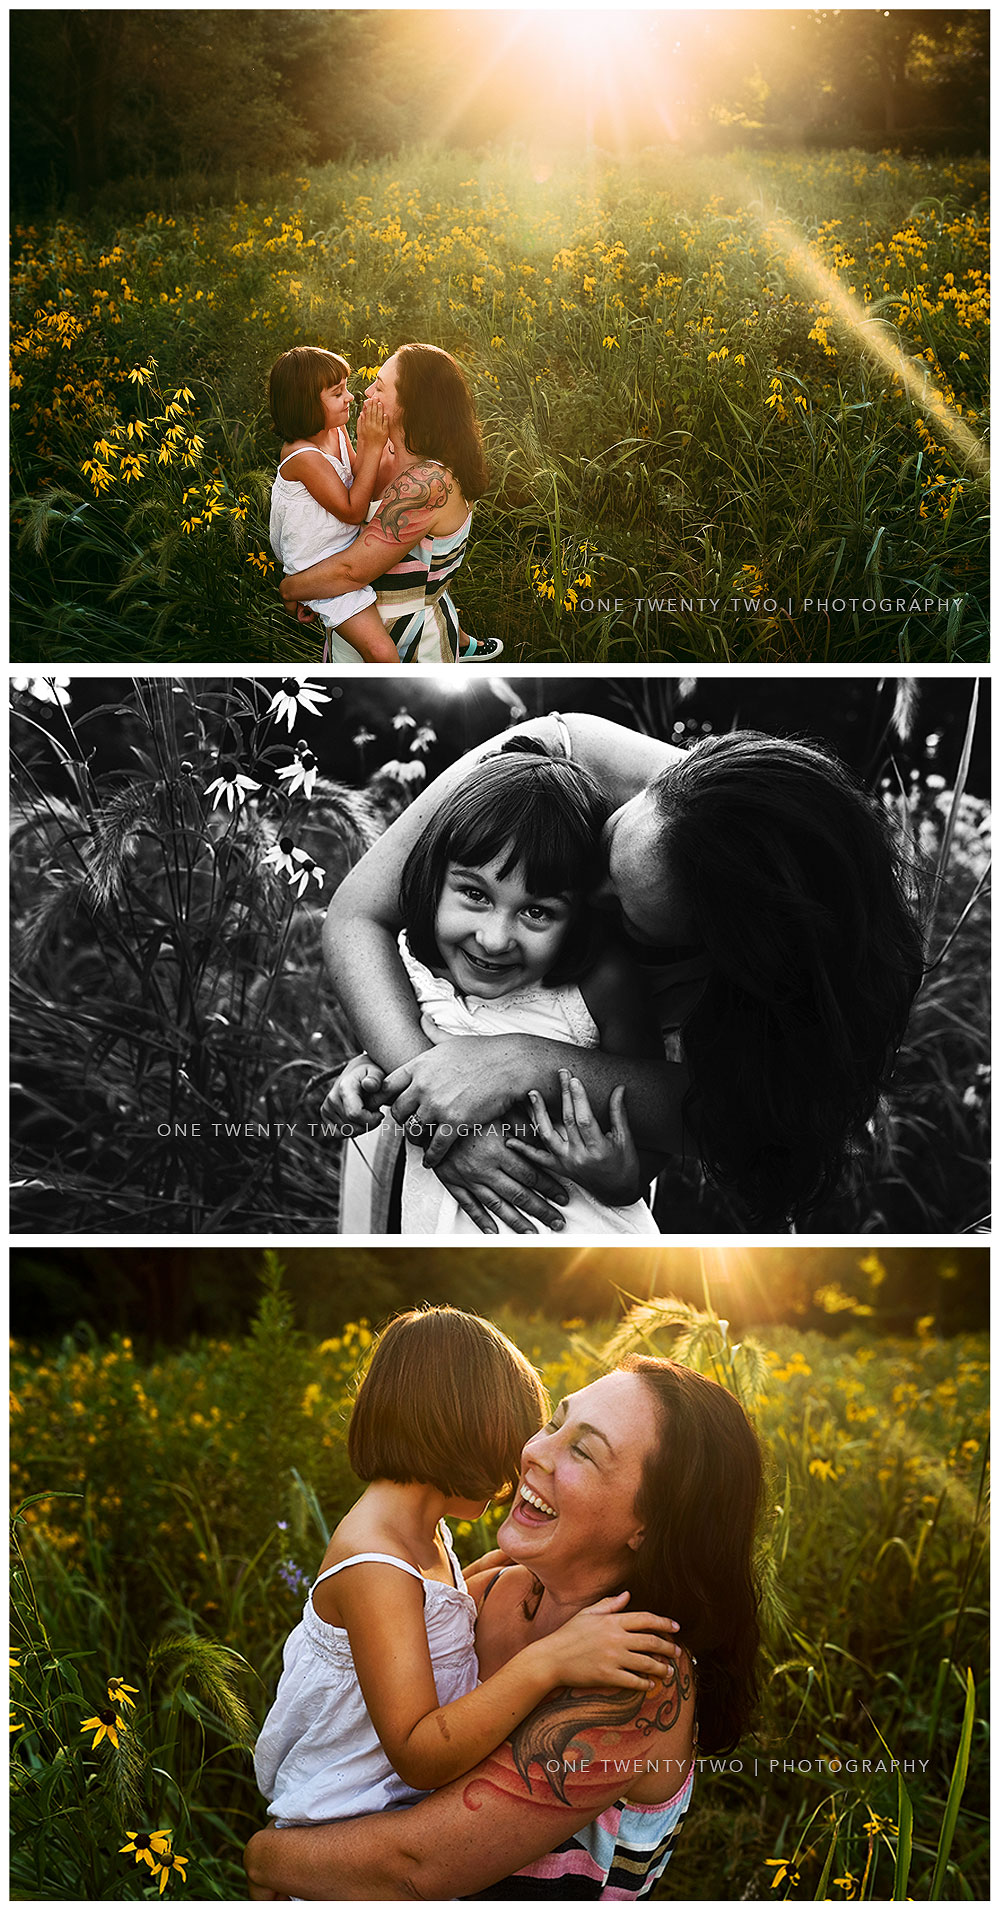 best-st-louis-family-pictures-in-wildflowers-one-twenty-two-photography.jpg